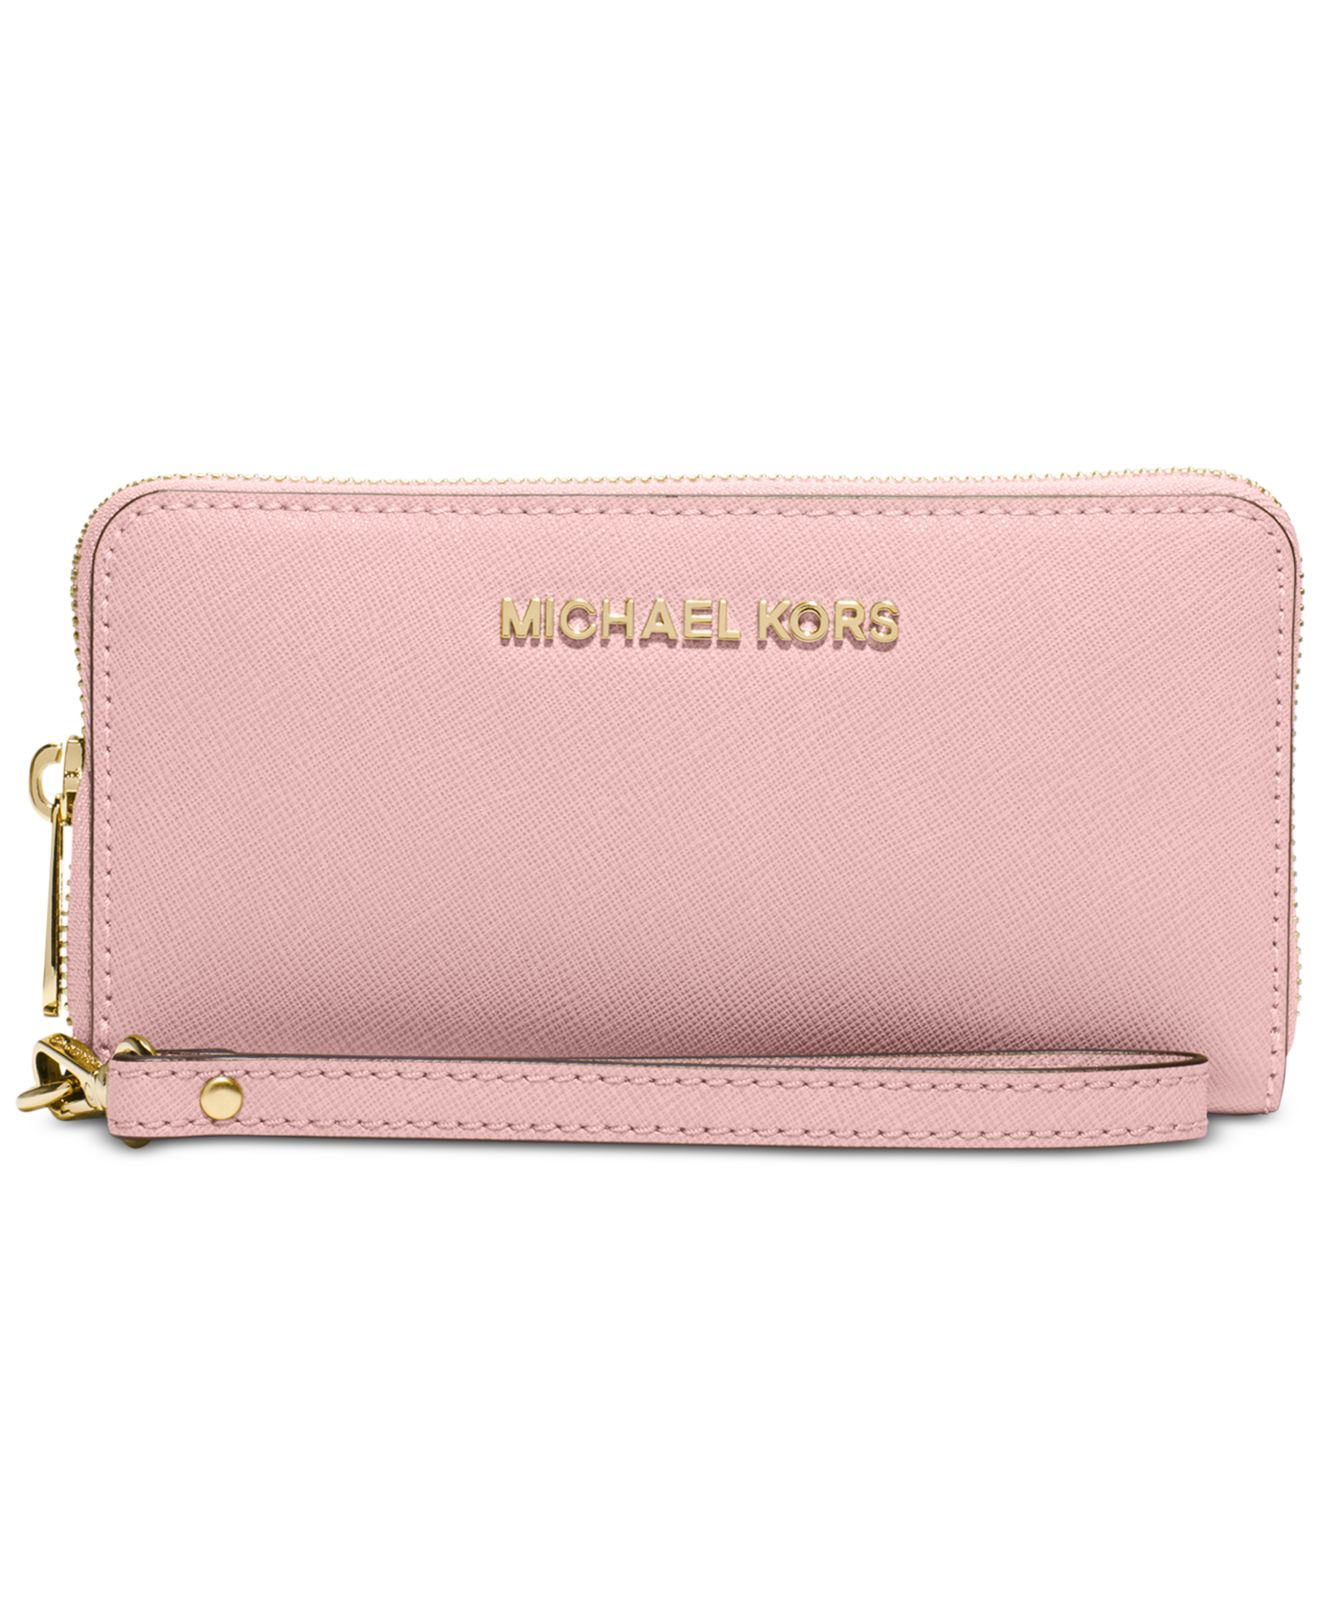 5c9590cbab55 Macys Michael Kors Pink Wallet | Stanford Center for Opportunity ...